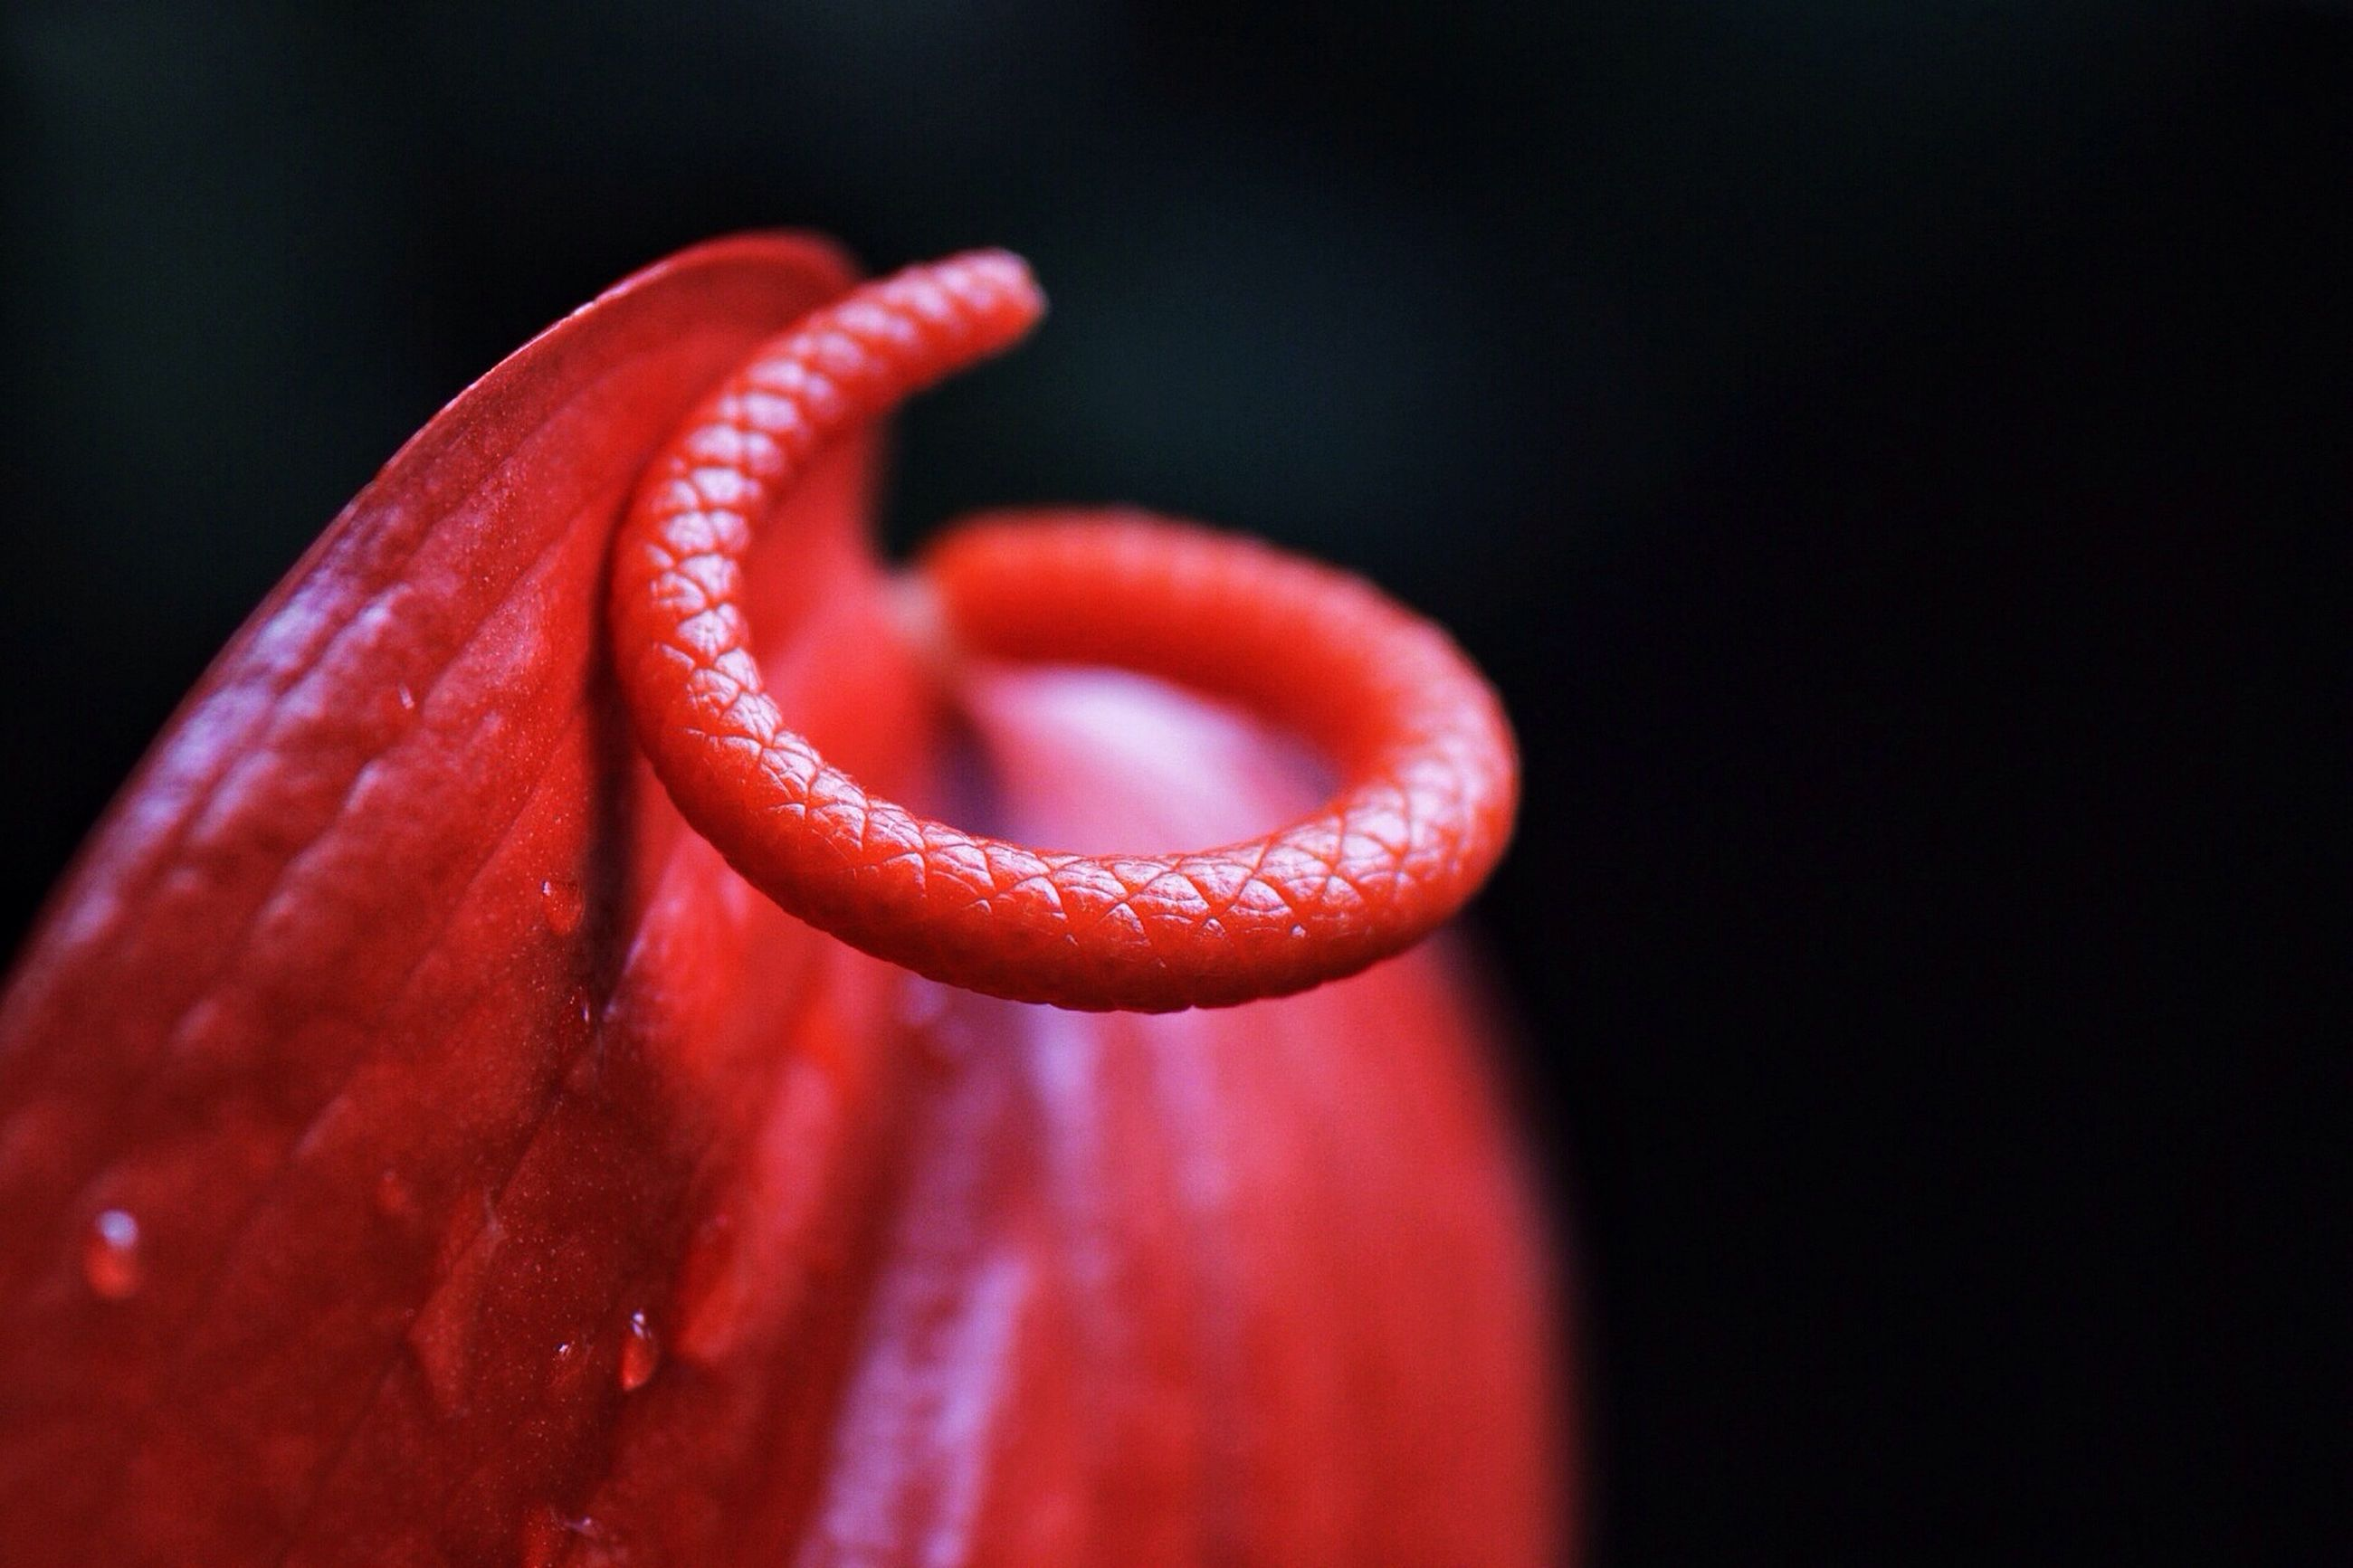 red, close-up, freshness, black background, studio shot, fragility, beauty in nature, drop, nature, selective focus, single object, macro, focus on foreground, flower, detail, no people, growth, petal, vibrant color, single flower